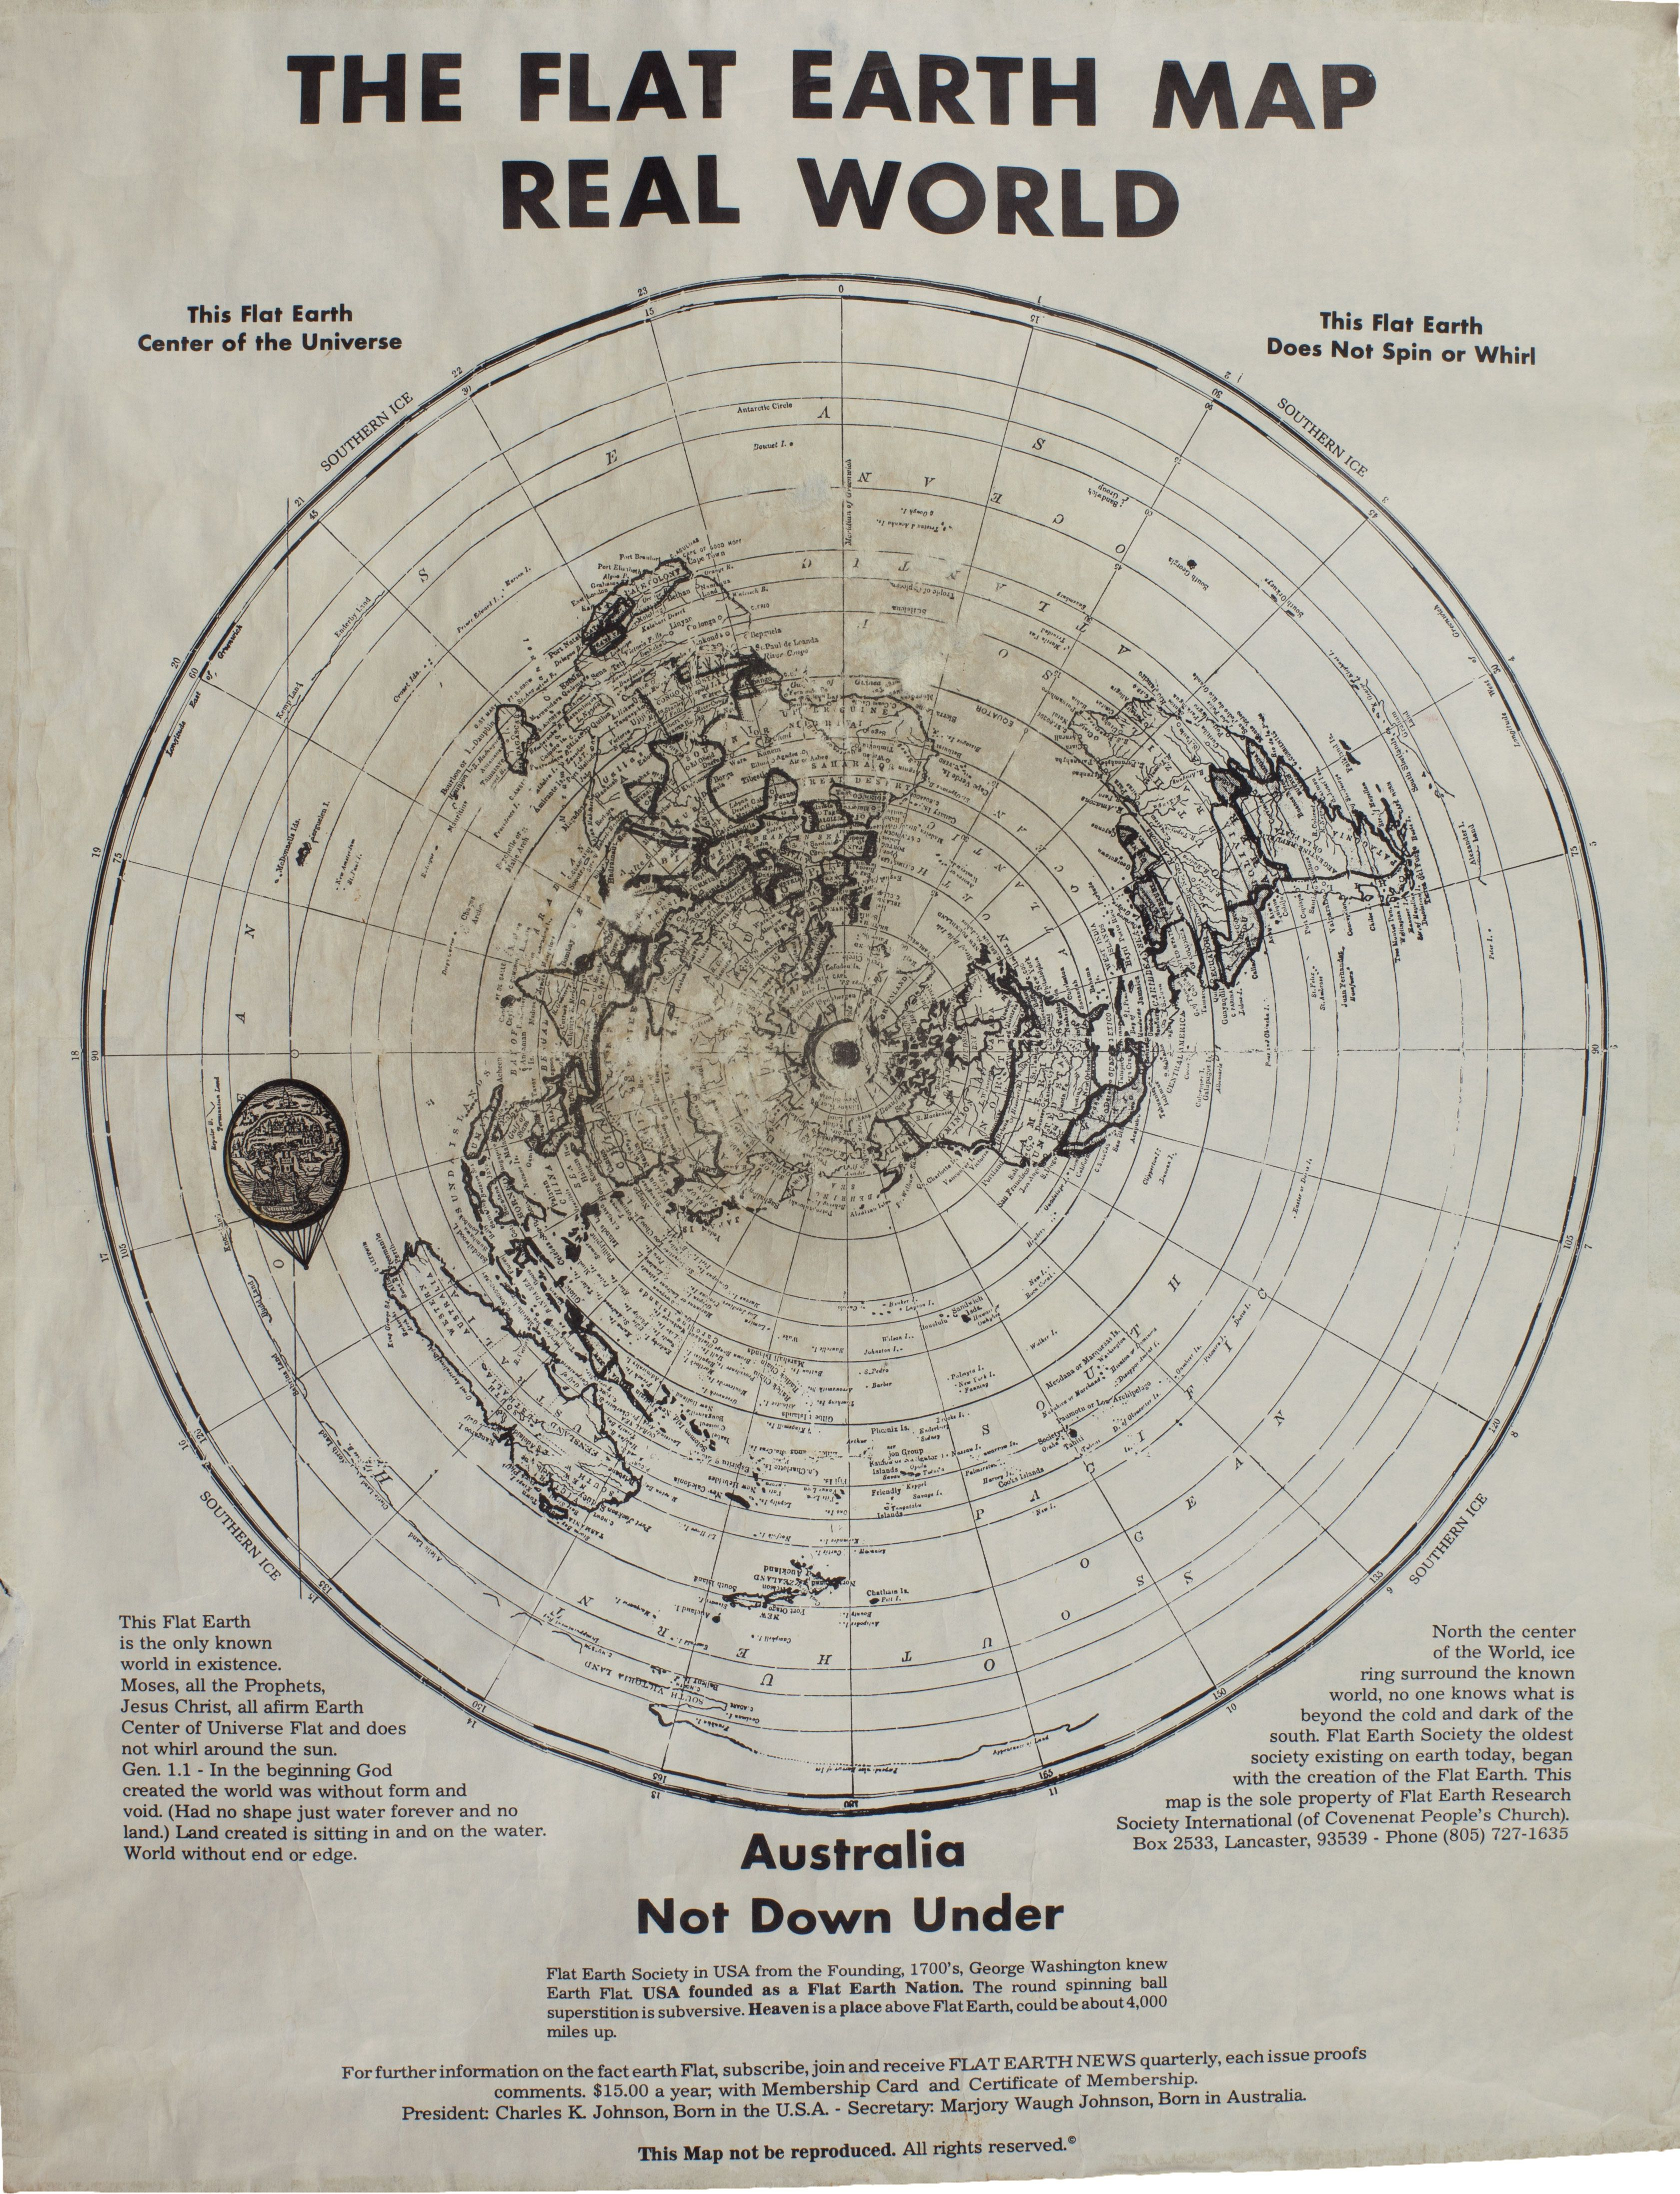 the flat earth map real world Flat Earth Society Real World Map Flat Earth Society Earth